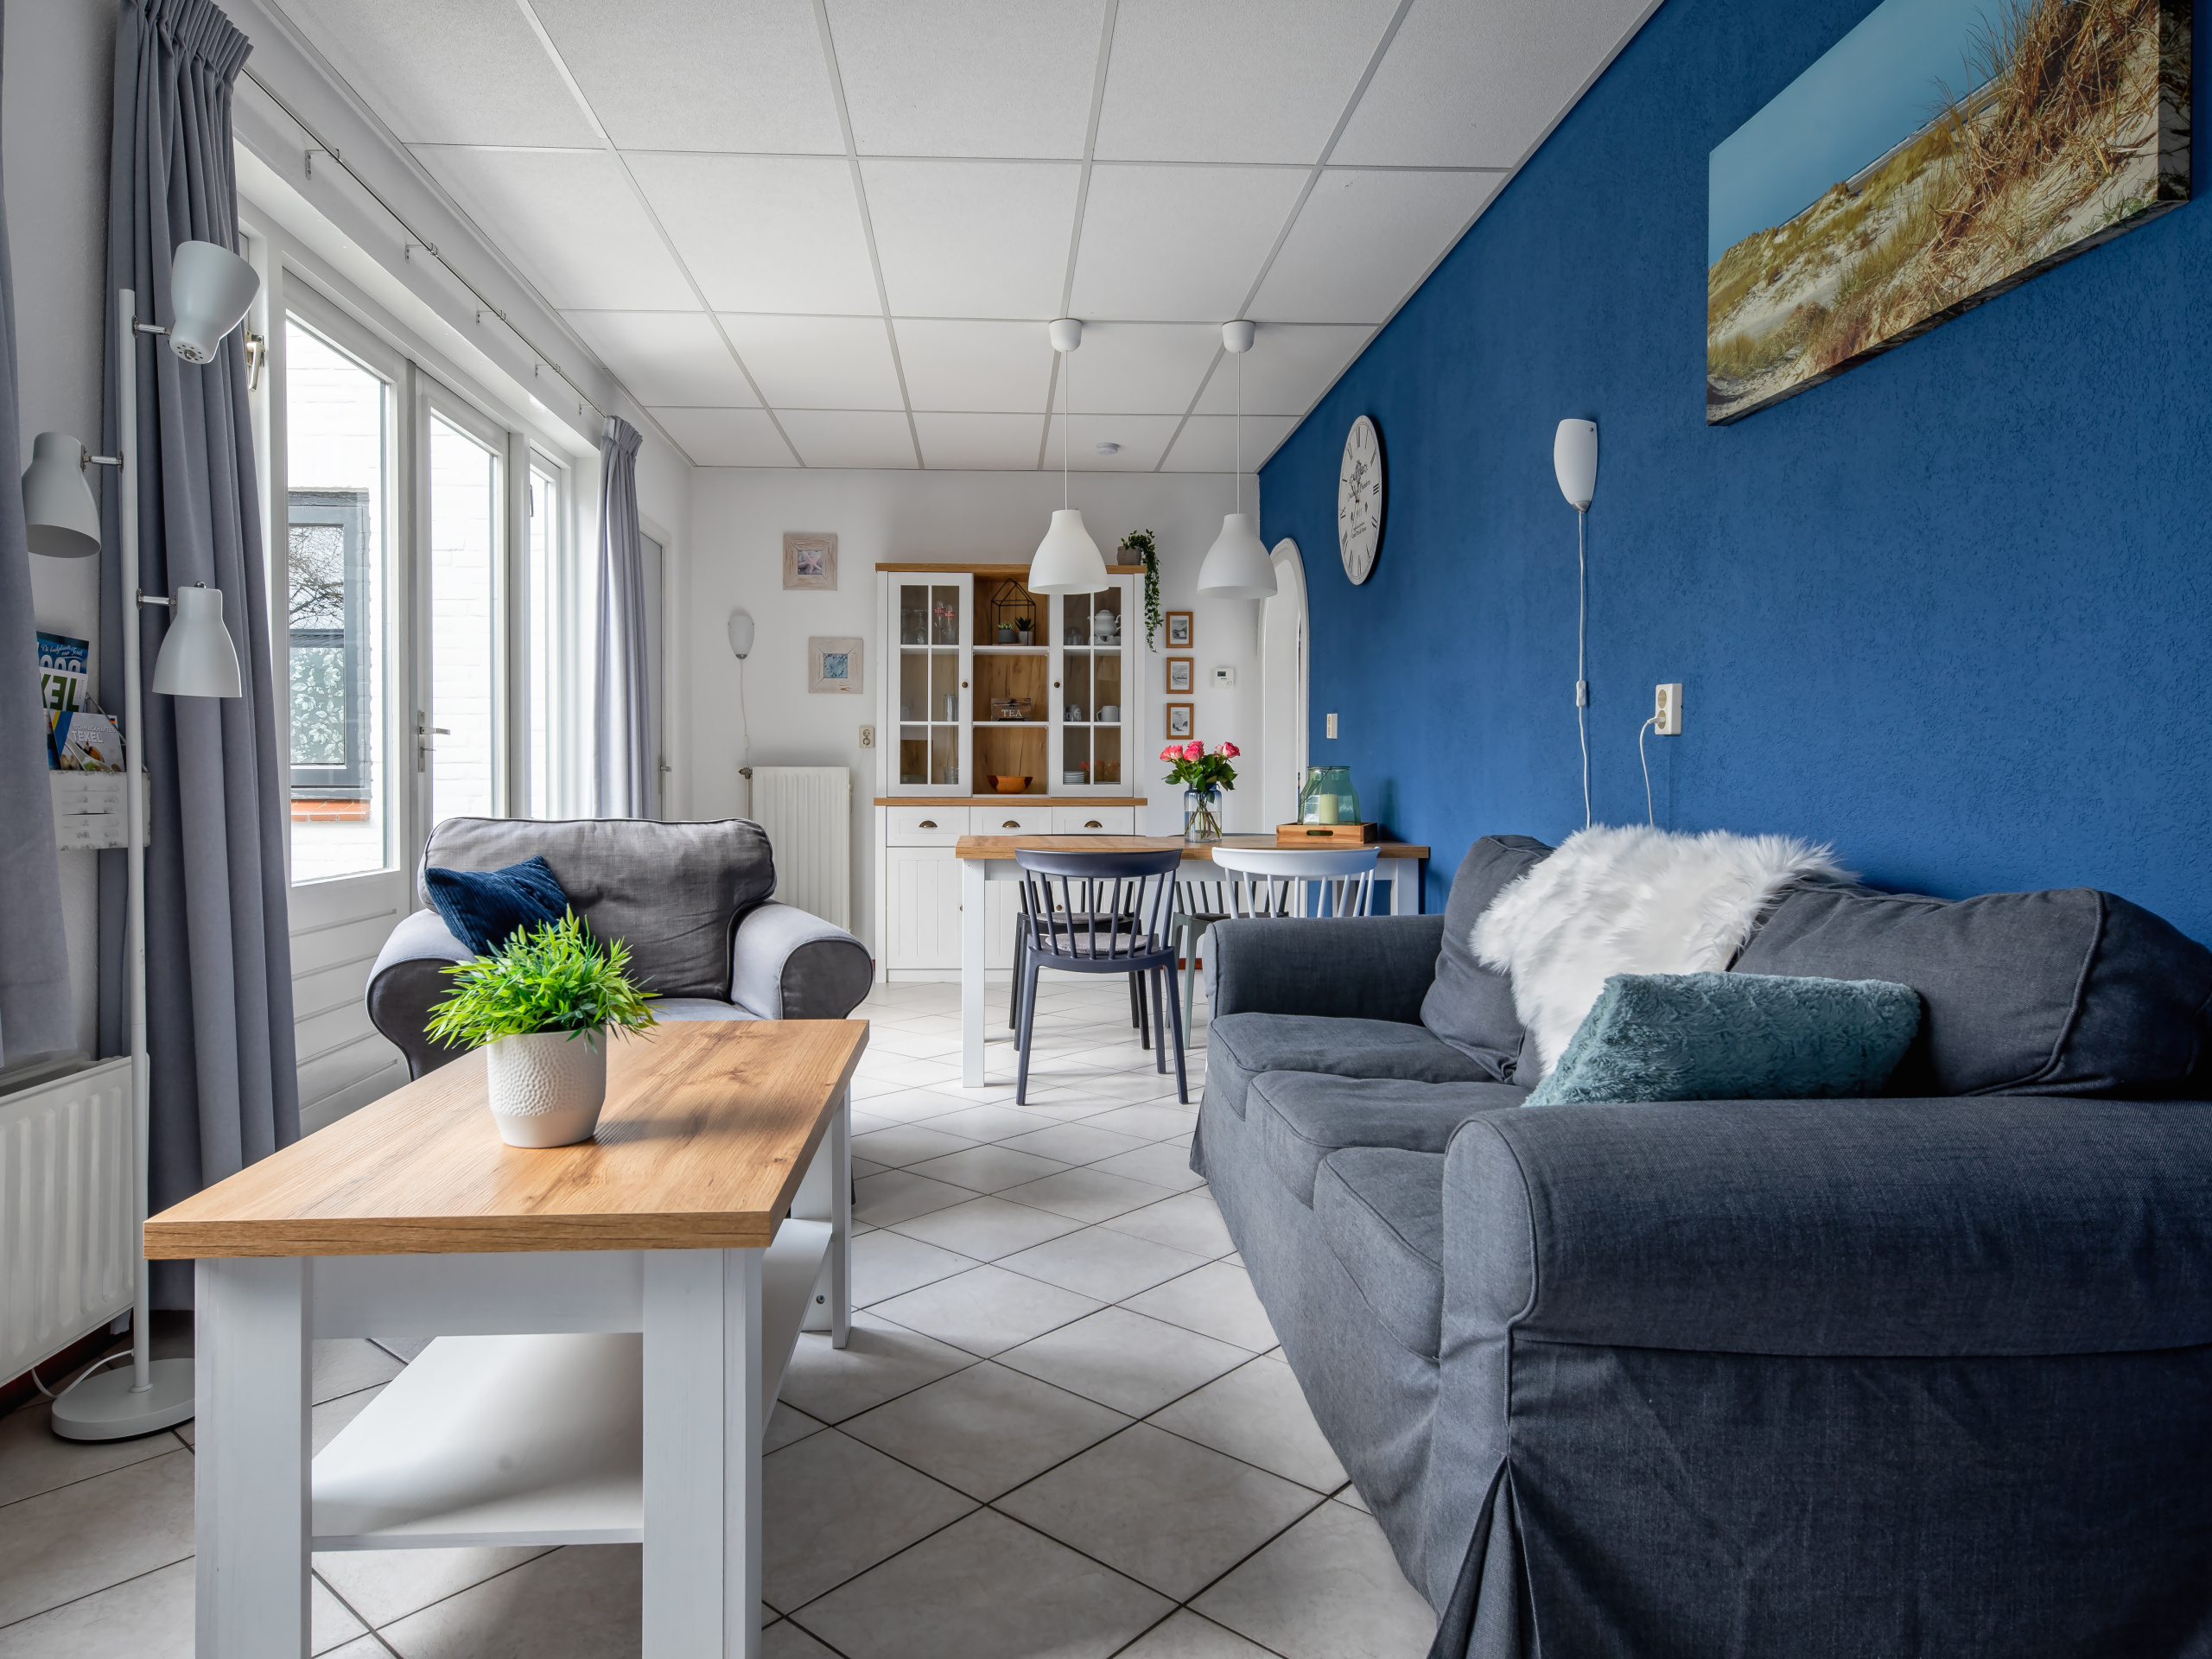 Lovely holiday home within walking distance of the North Sea beach and the center of De Koog